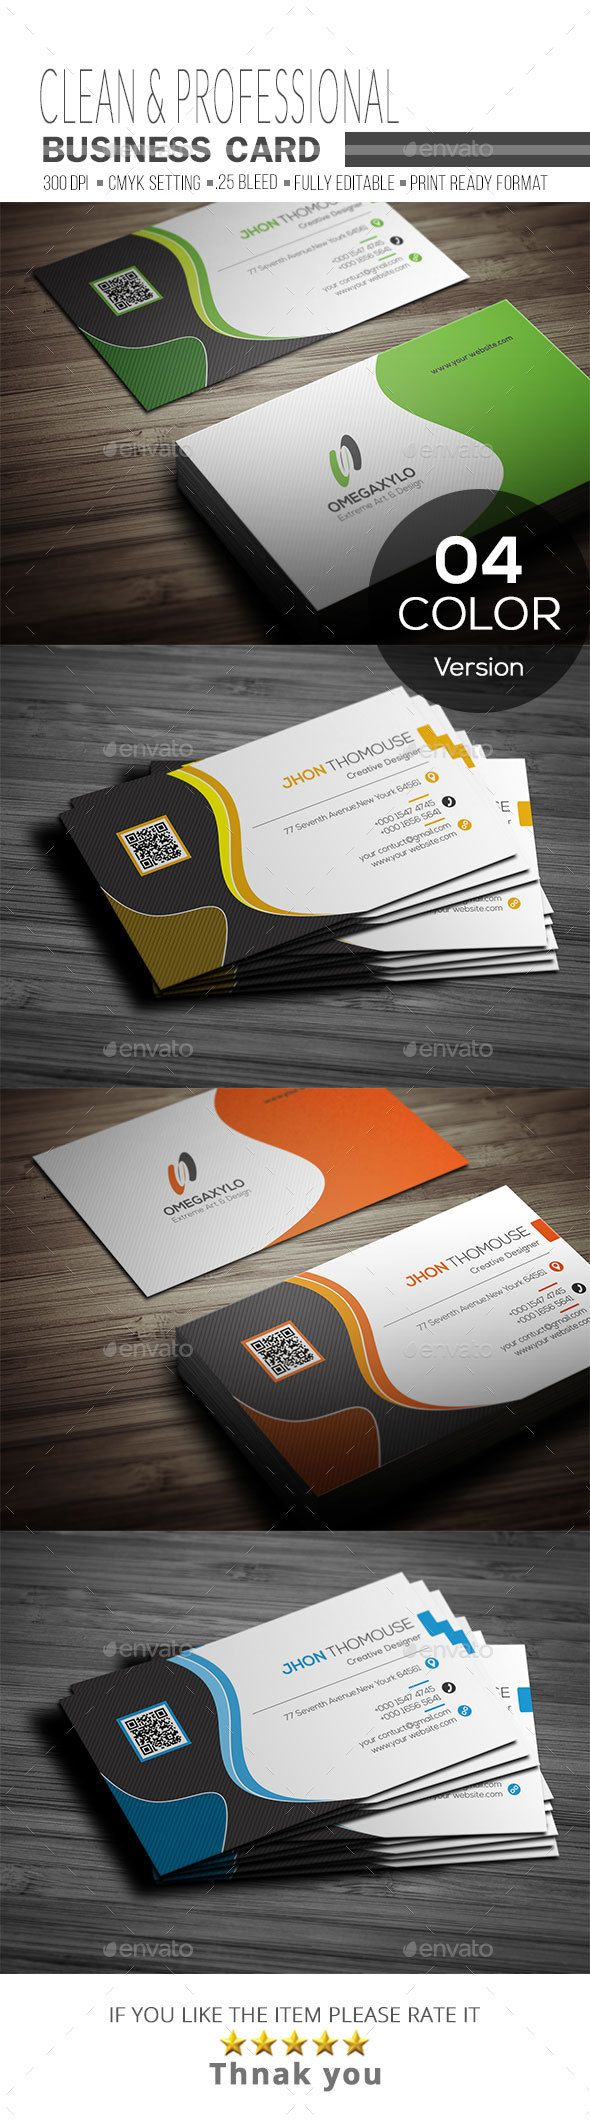 649 best business cards images on pinterest business cards business card magicingreecefo Choice Image